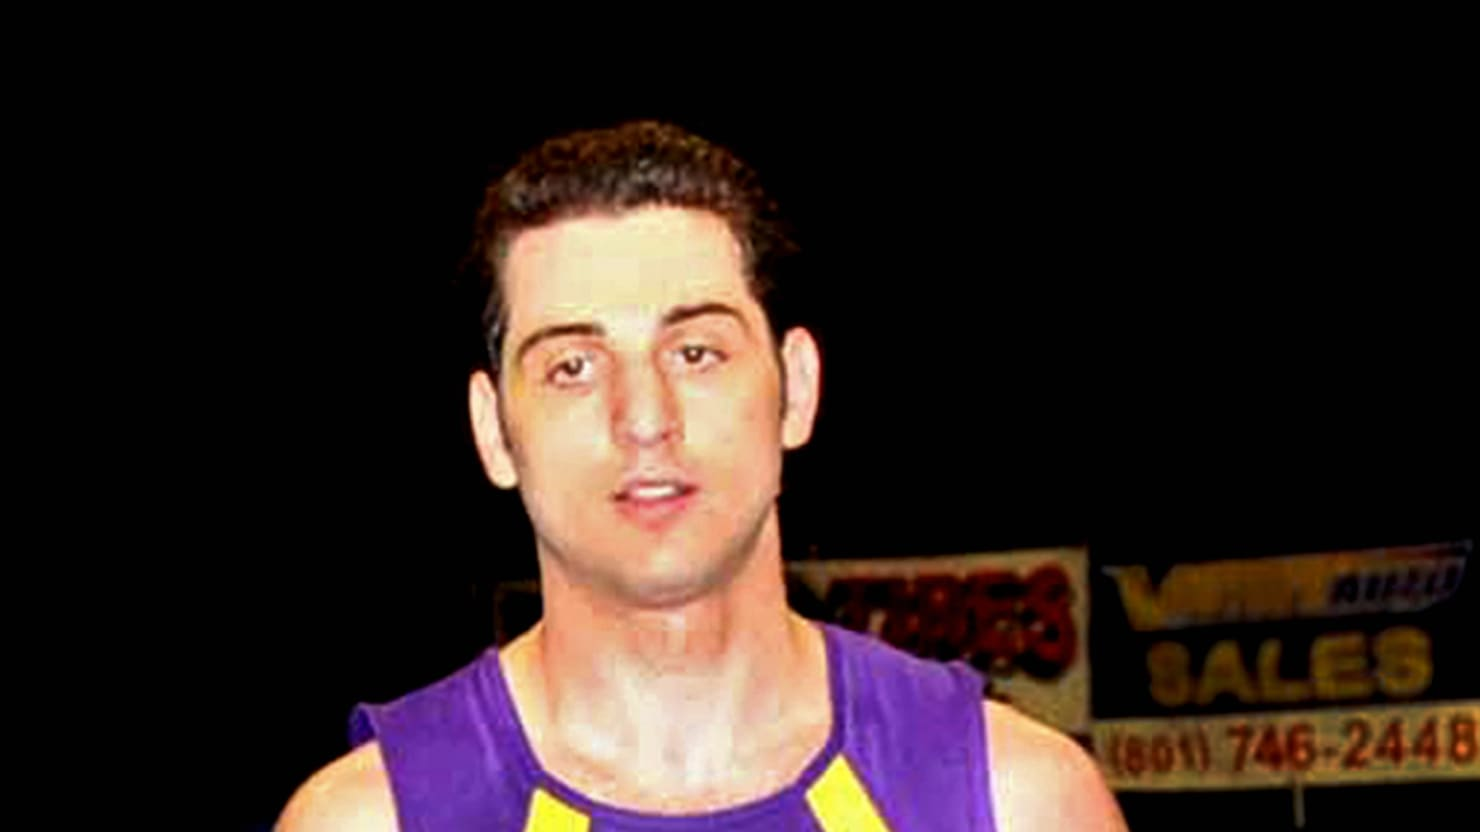 How Local Police Missed a Chance to Stop Tamerlan Tsarnaev in 2011